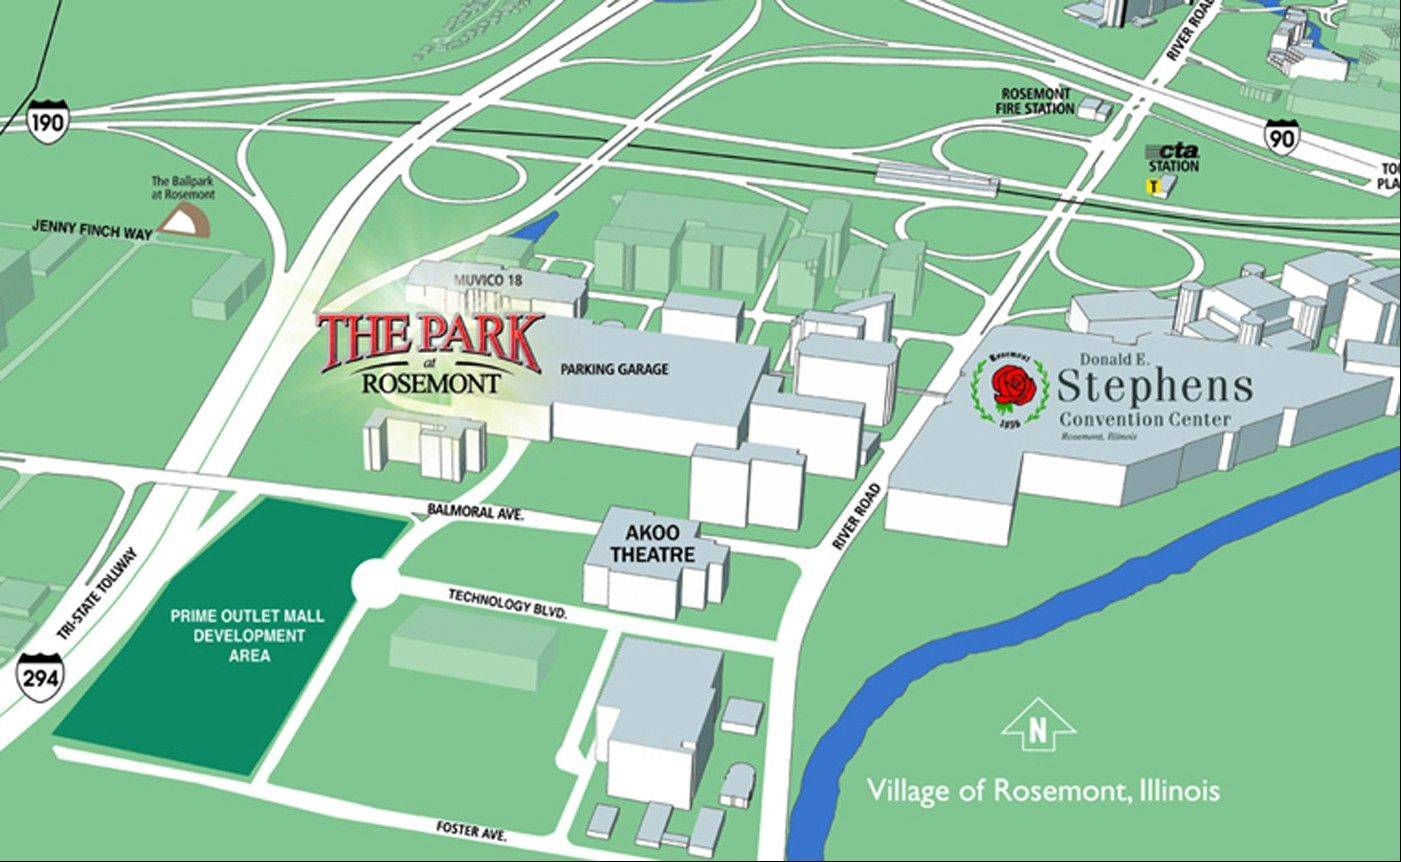 This is a site map of The Park At Rosemont entertainment district.